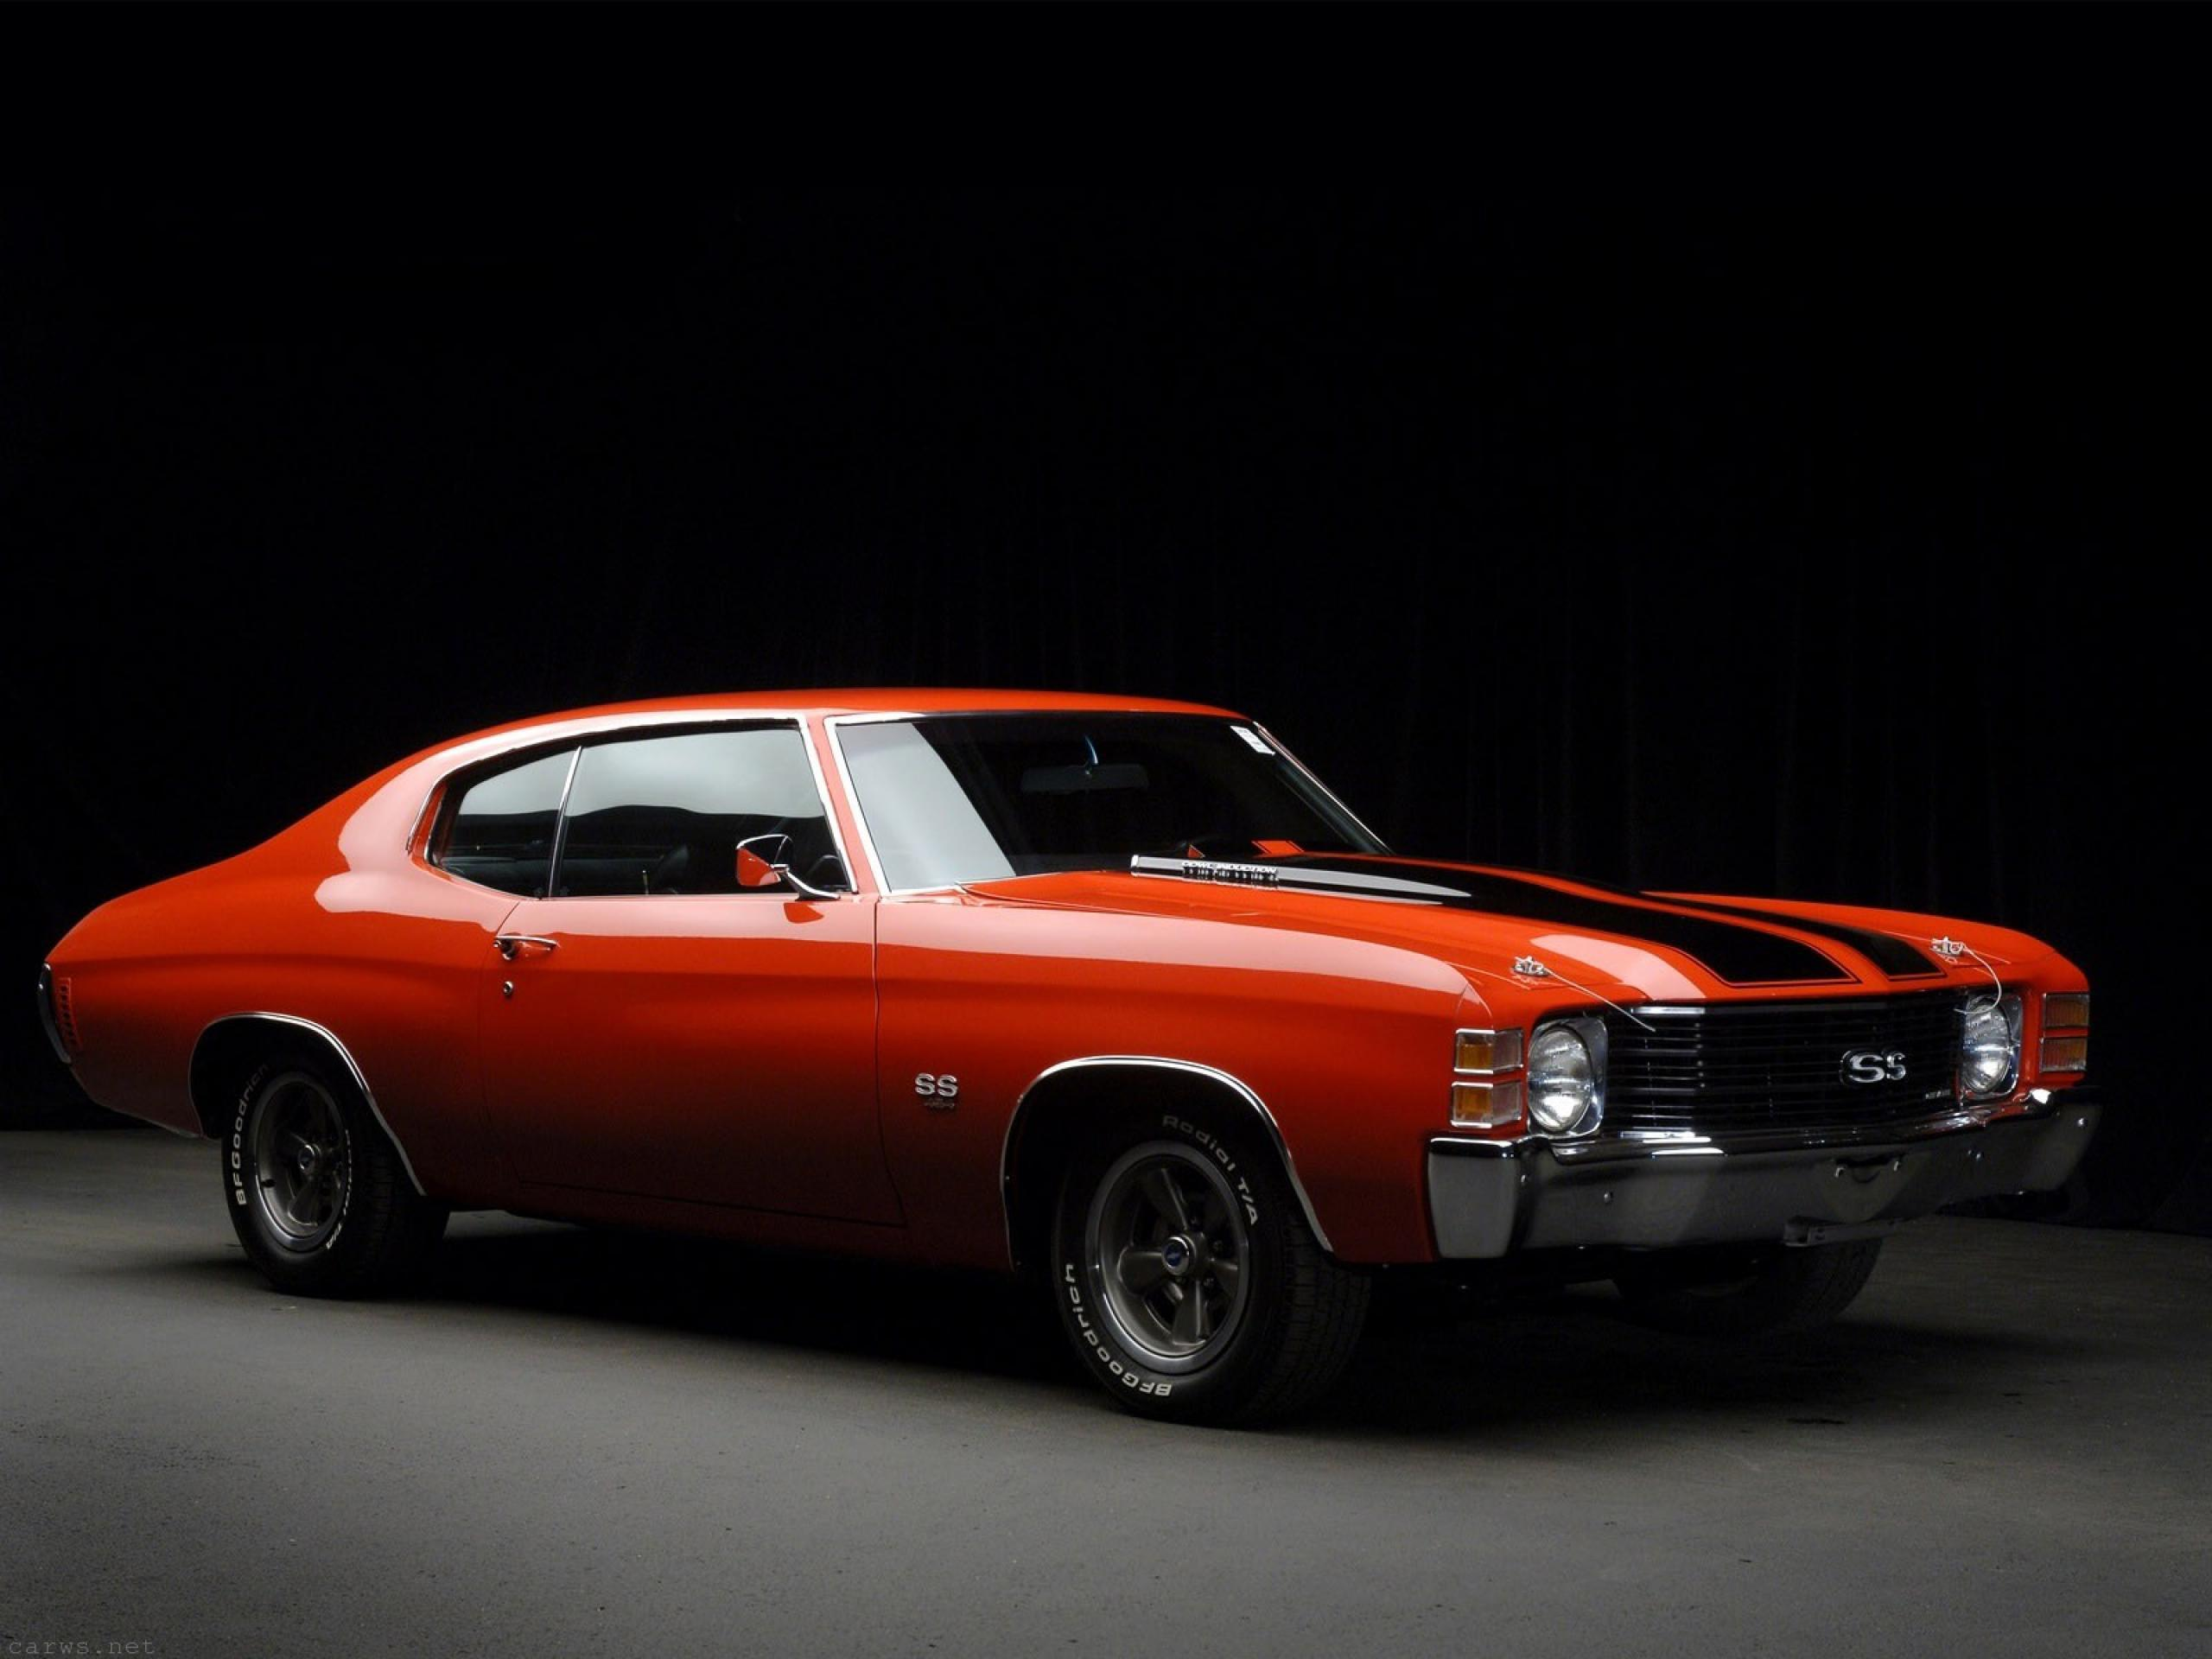 Muscle Car Wallpapers Wallpaper Cave